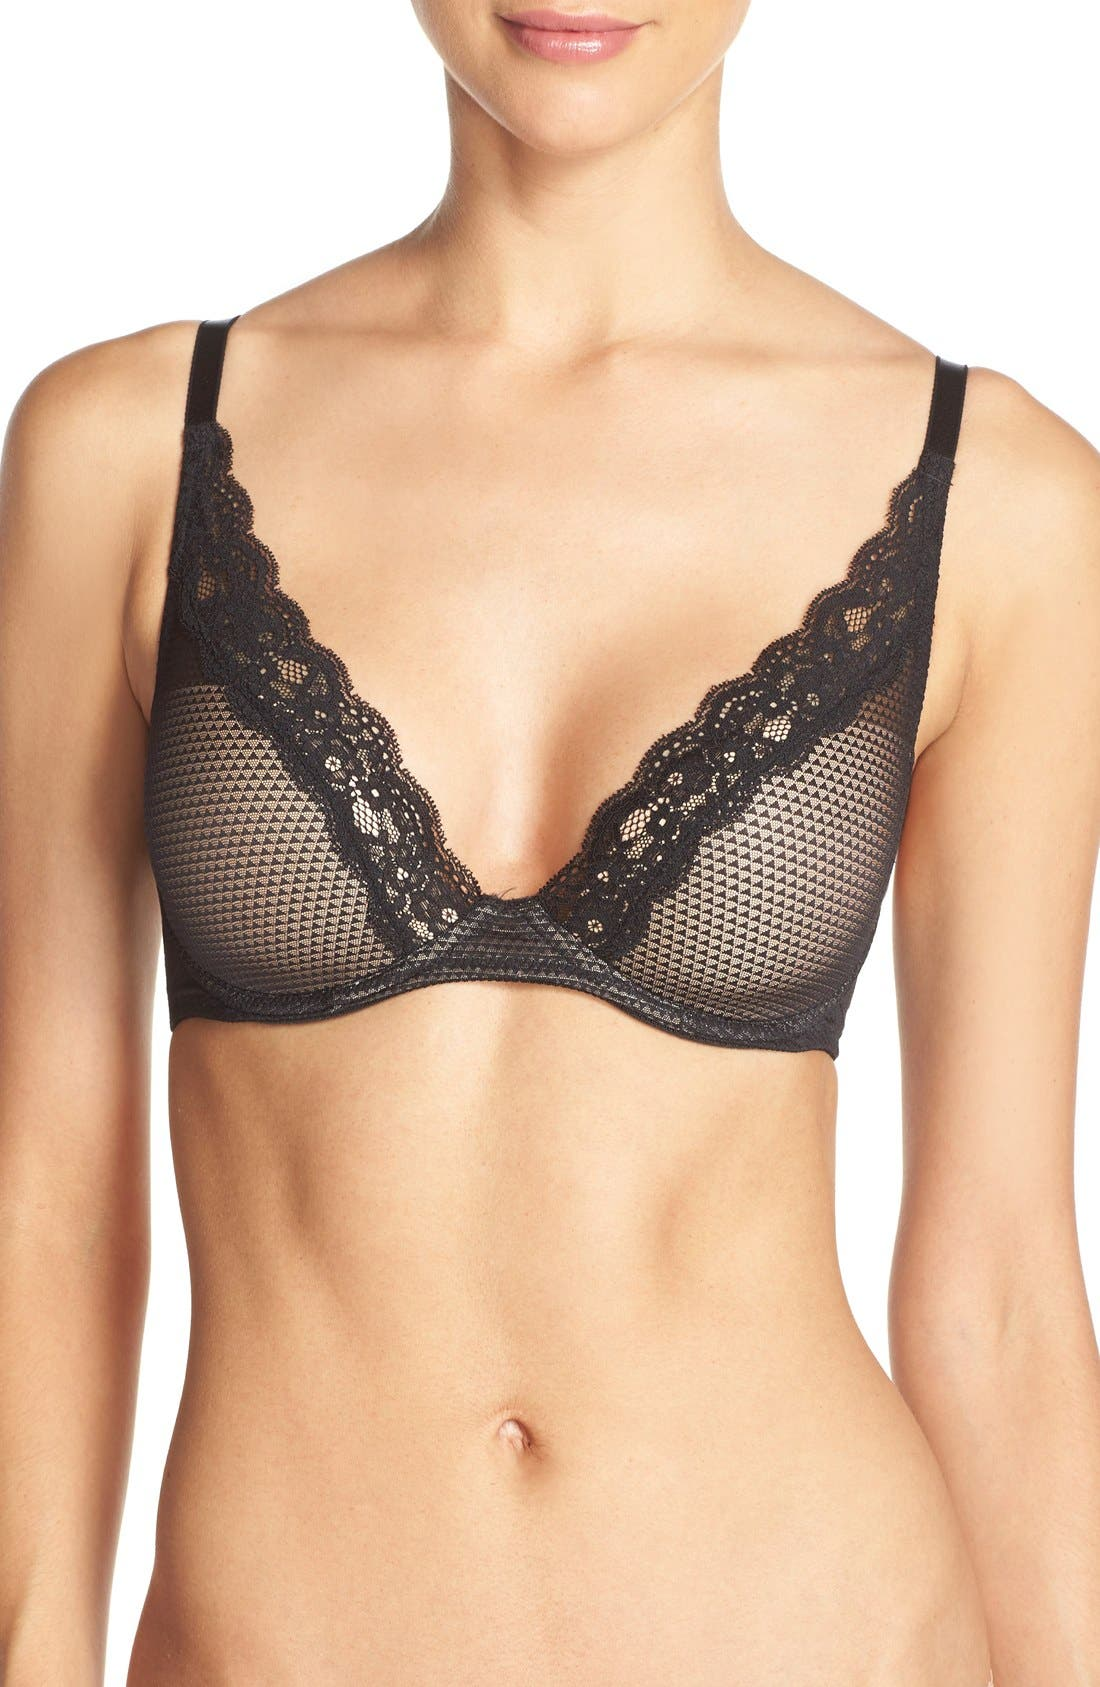 'Brooklyn' Underwire T-Shirt Bra,                         Main,                         color, Black